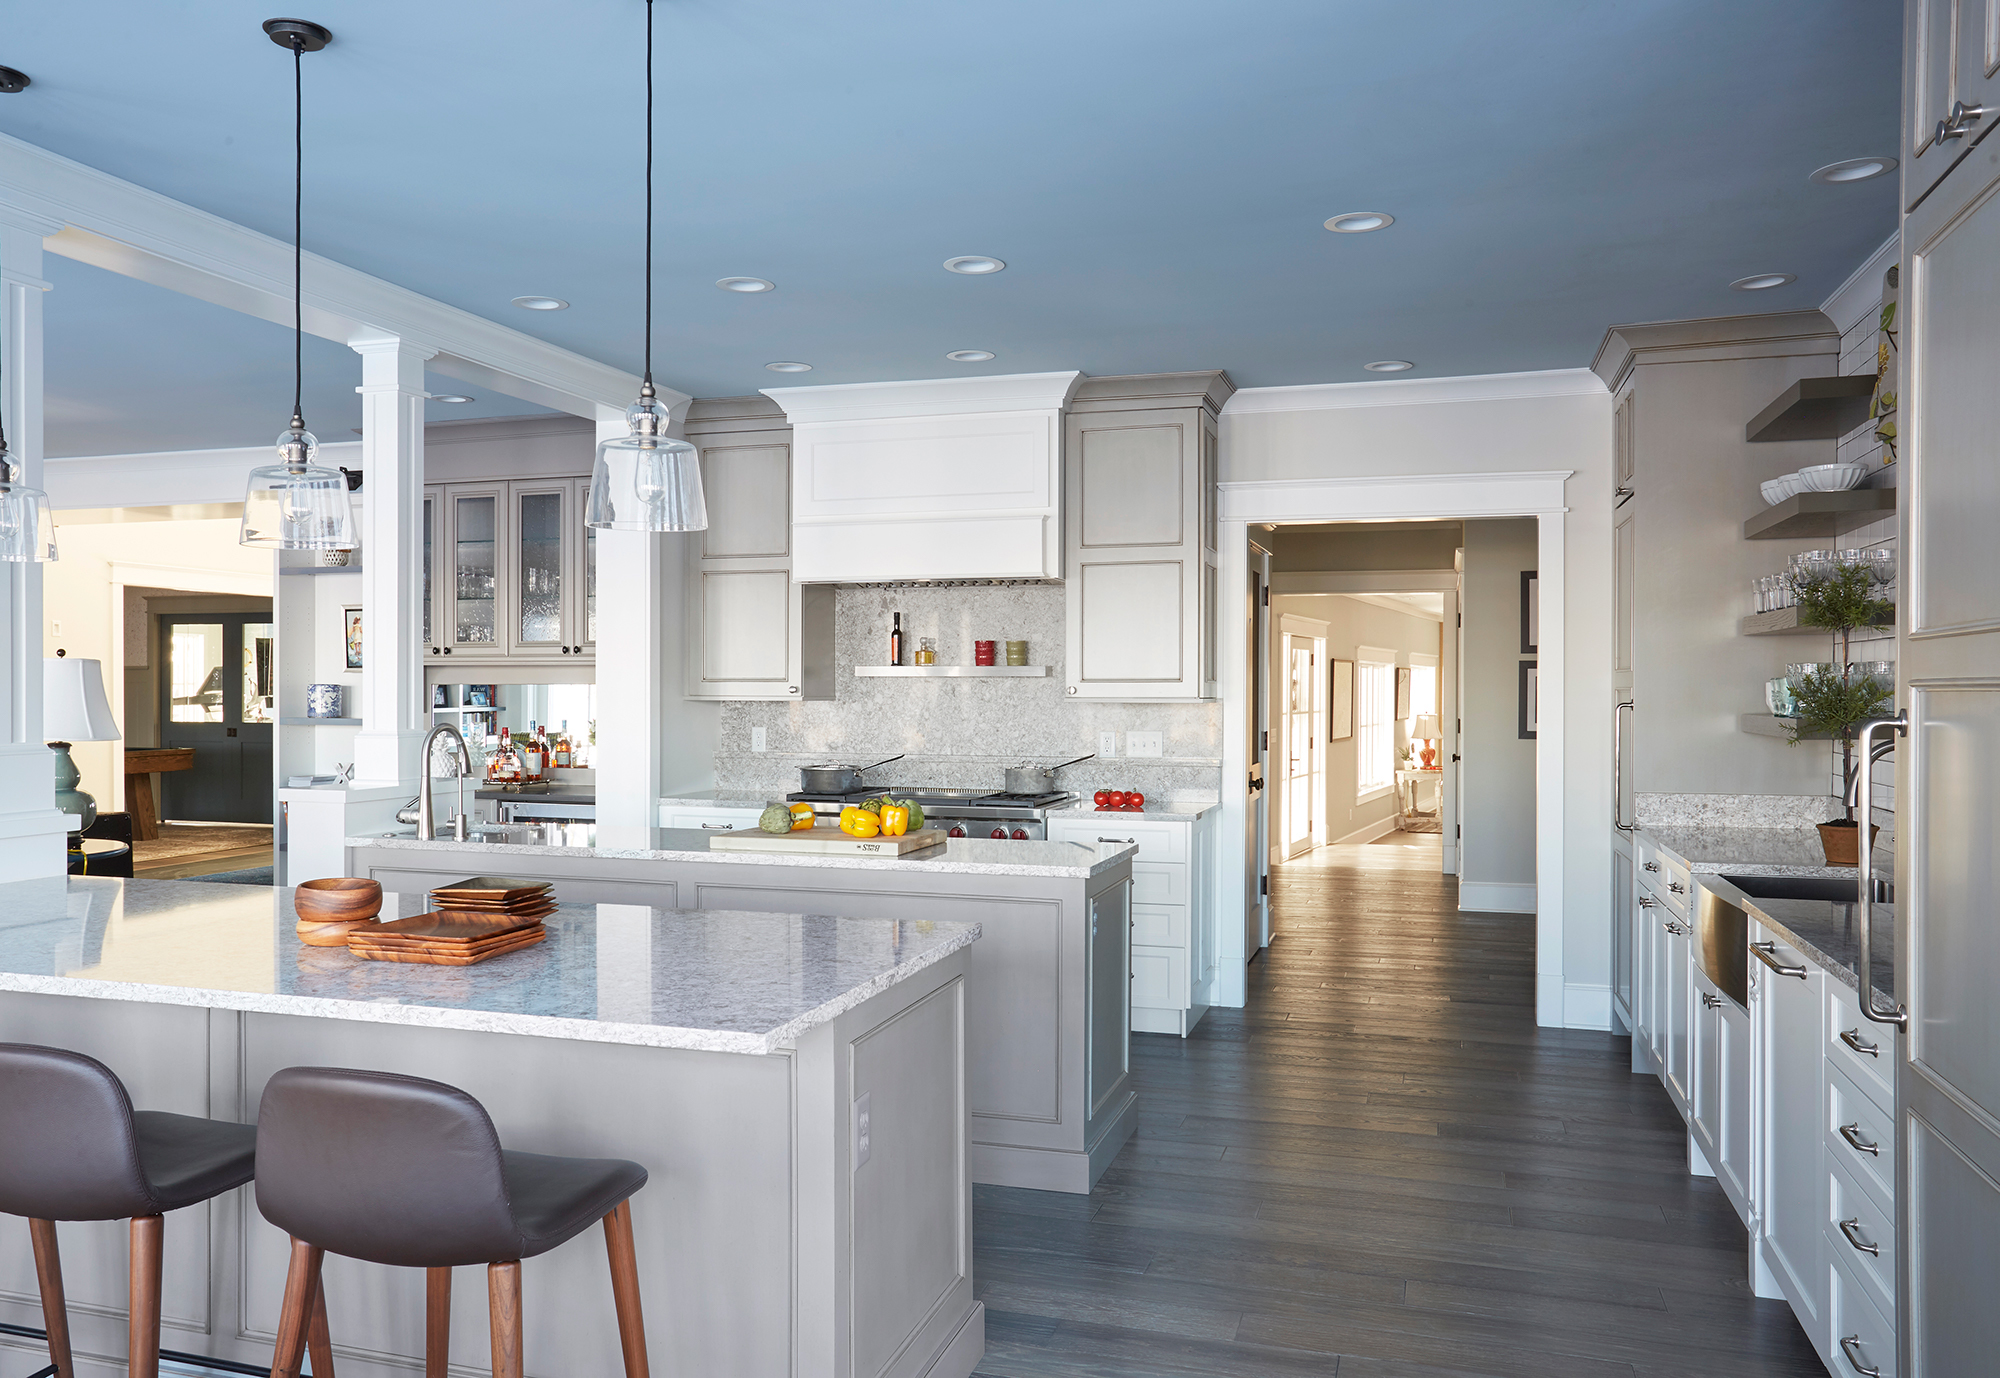 Painted Kitchen cabinets in White and island in Cottage Gray with Walnut glaze by Showplace Cabinetry - view 3